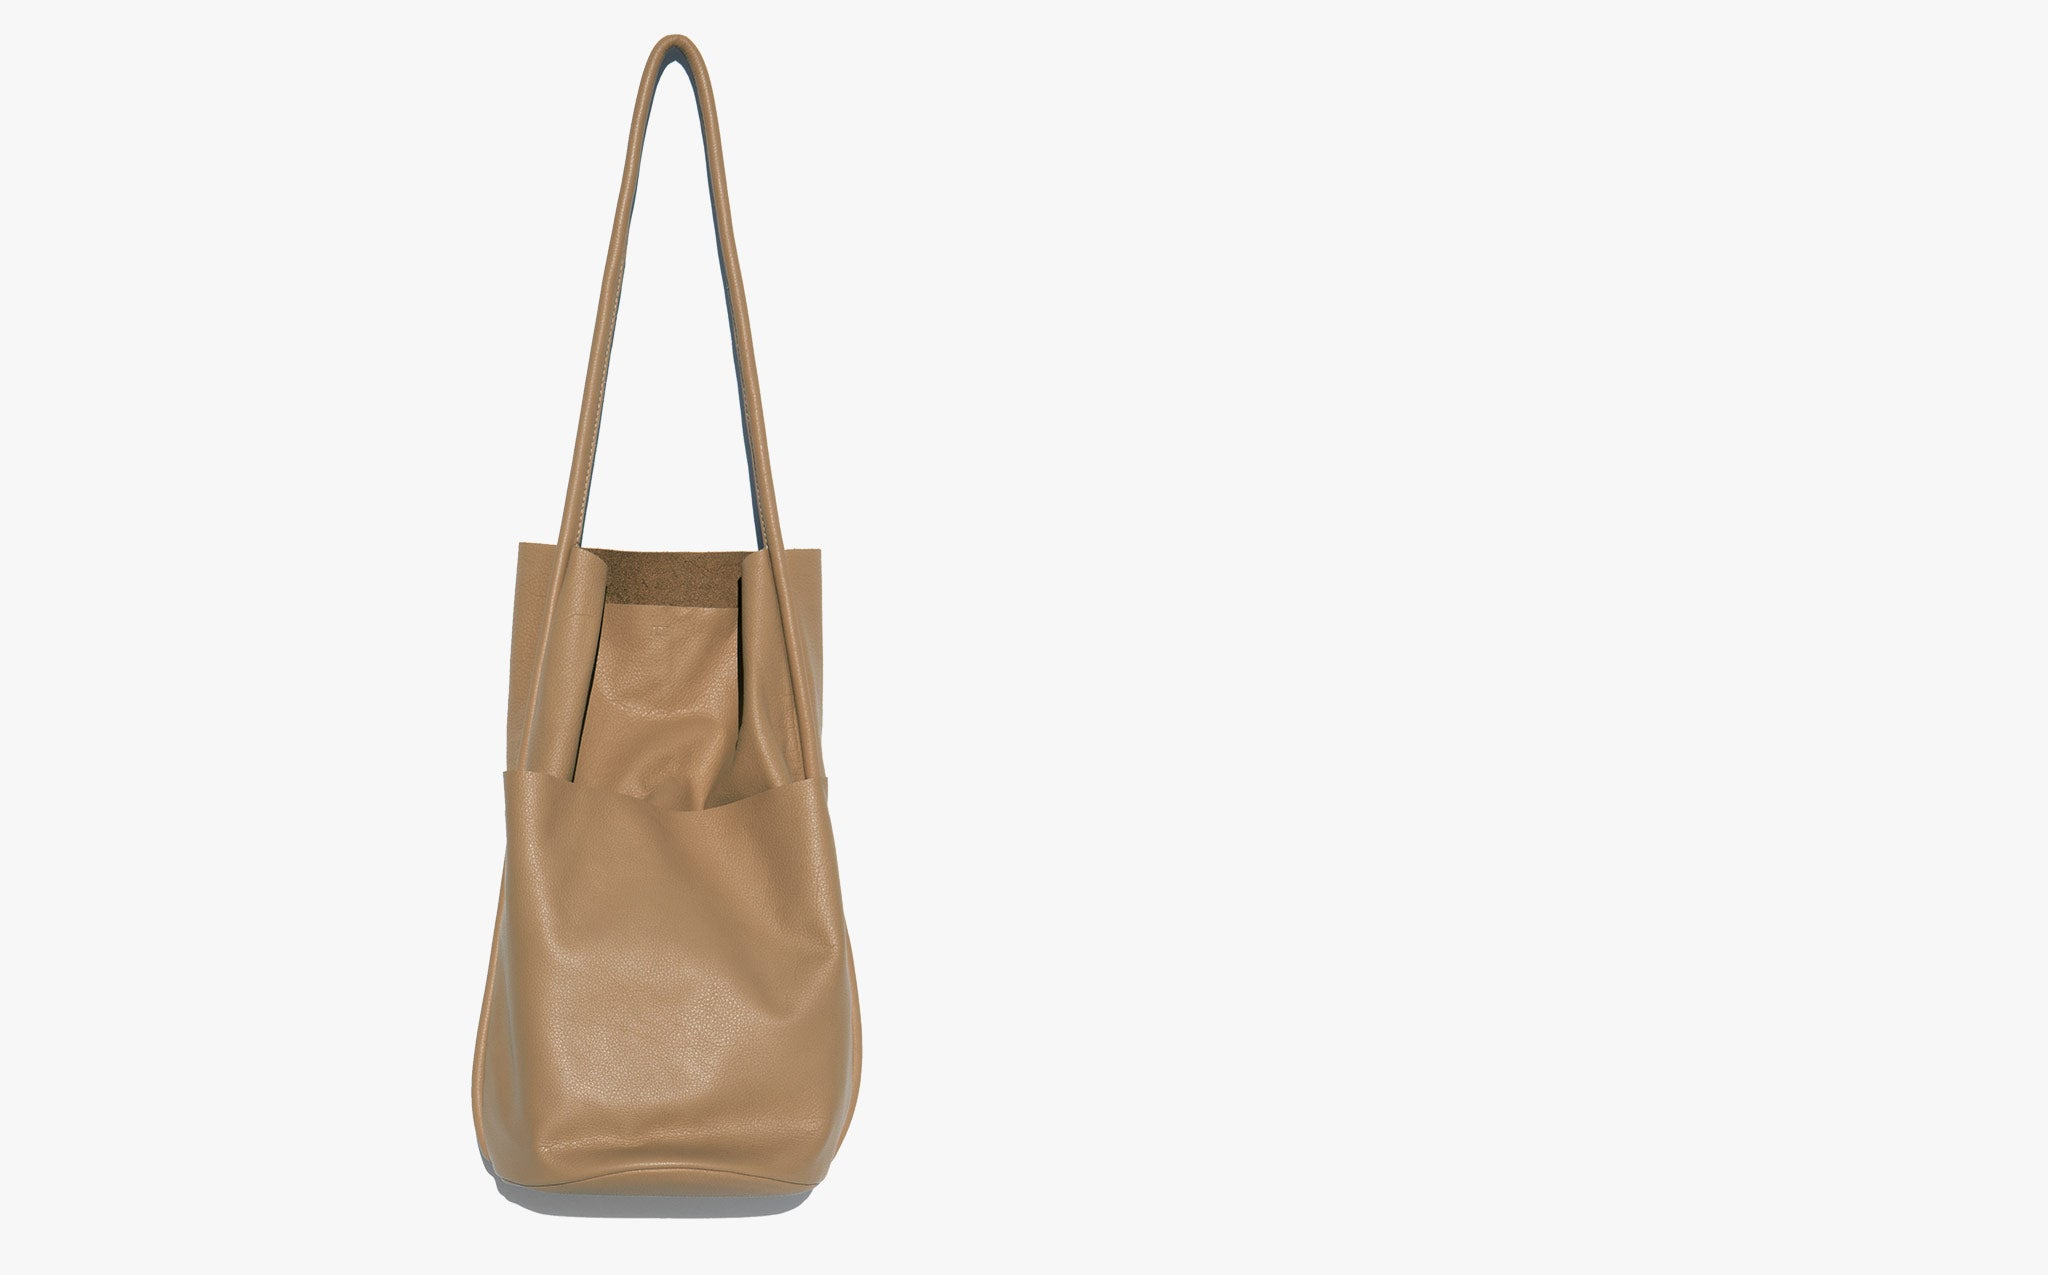 Are Studio Dust Buoy Tote Bag